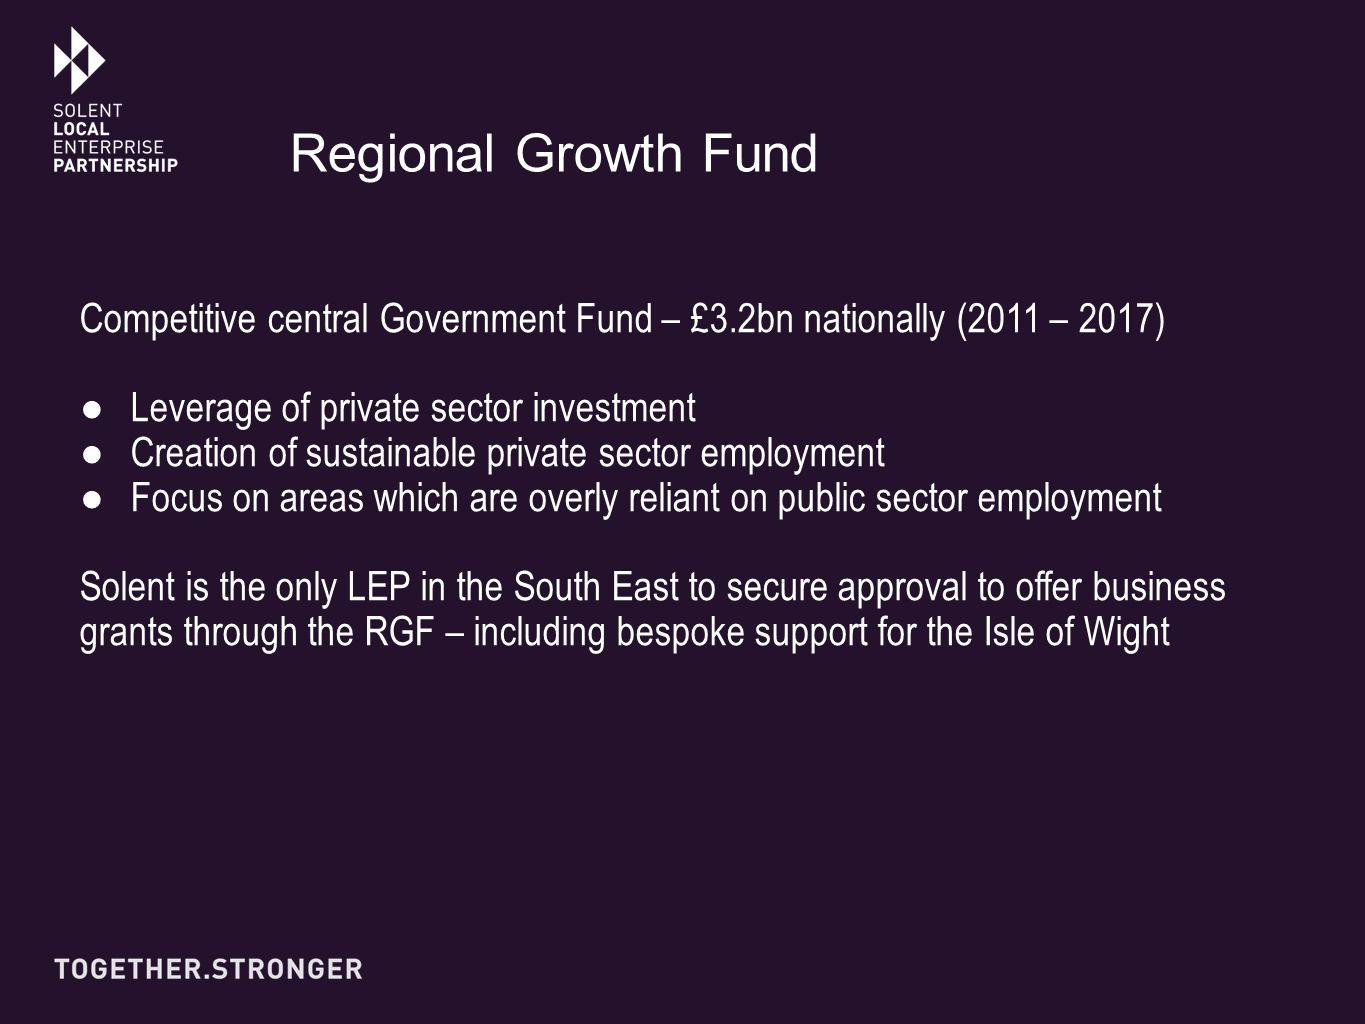 Competitive central Government Fund – £3.2bn nationally (2011 – 2017) ●Leverage of private sector investment ●Creation of sustainable private sector employment ●Focus on areas which are overly reliant on public sector employment Solent is the only LEP in the South East to secure approval to offer business grants through the RGF – including bespoke support for the Isle of Wight Regional Growth Fund